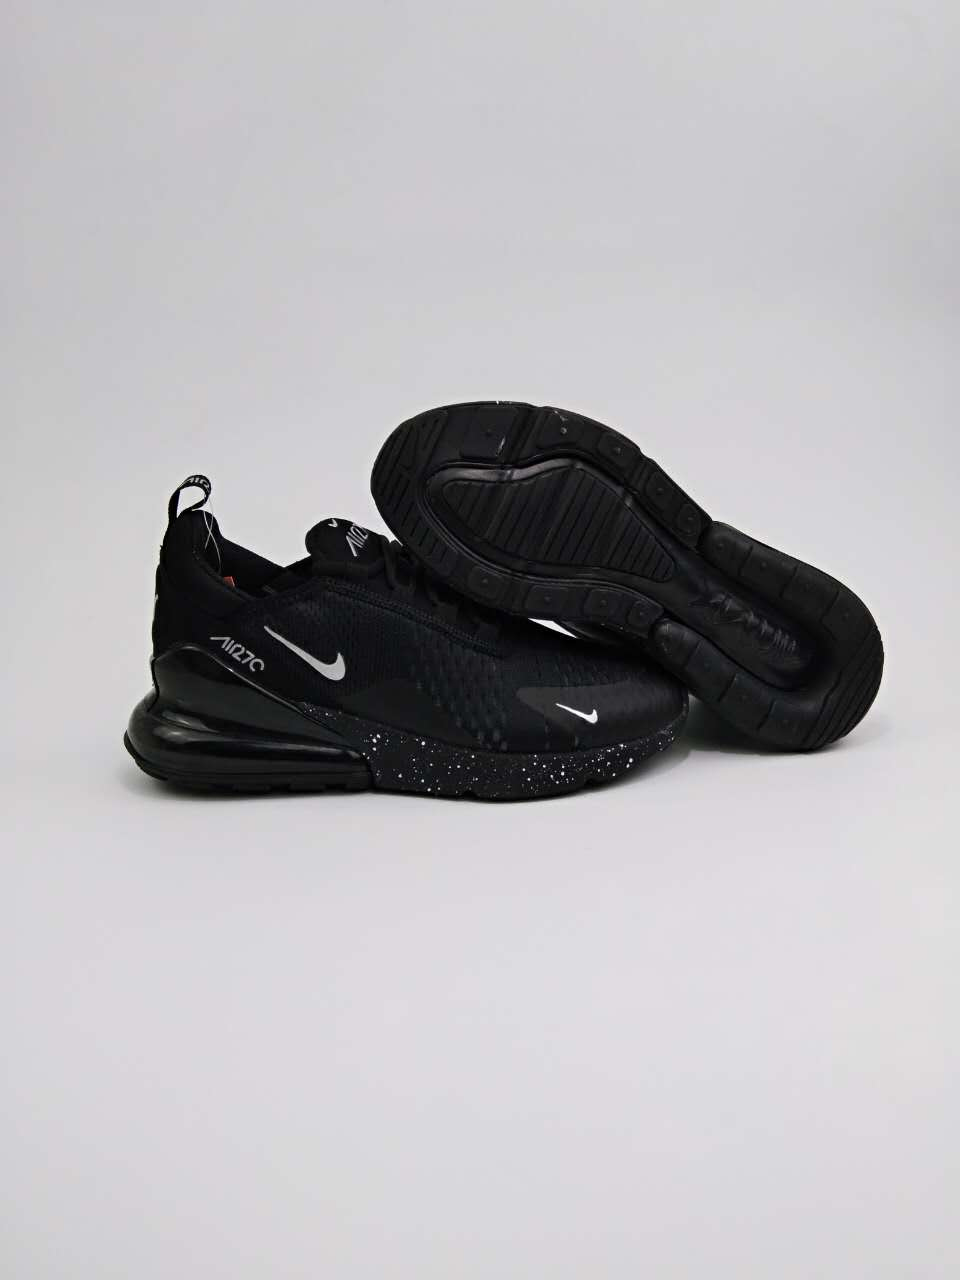 New Nike Air Max Flair 270 Nano All Black Shoes